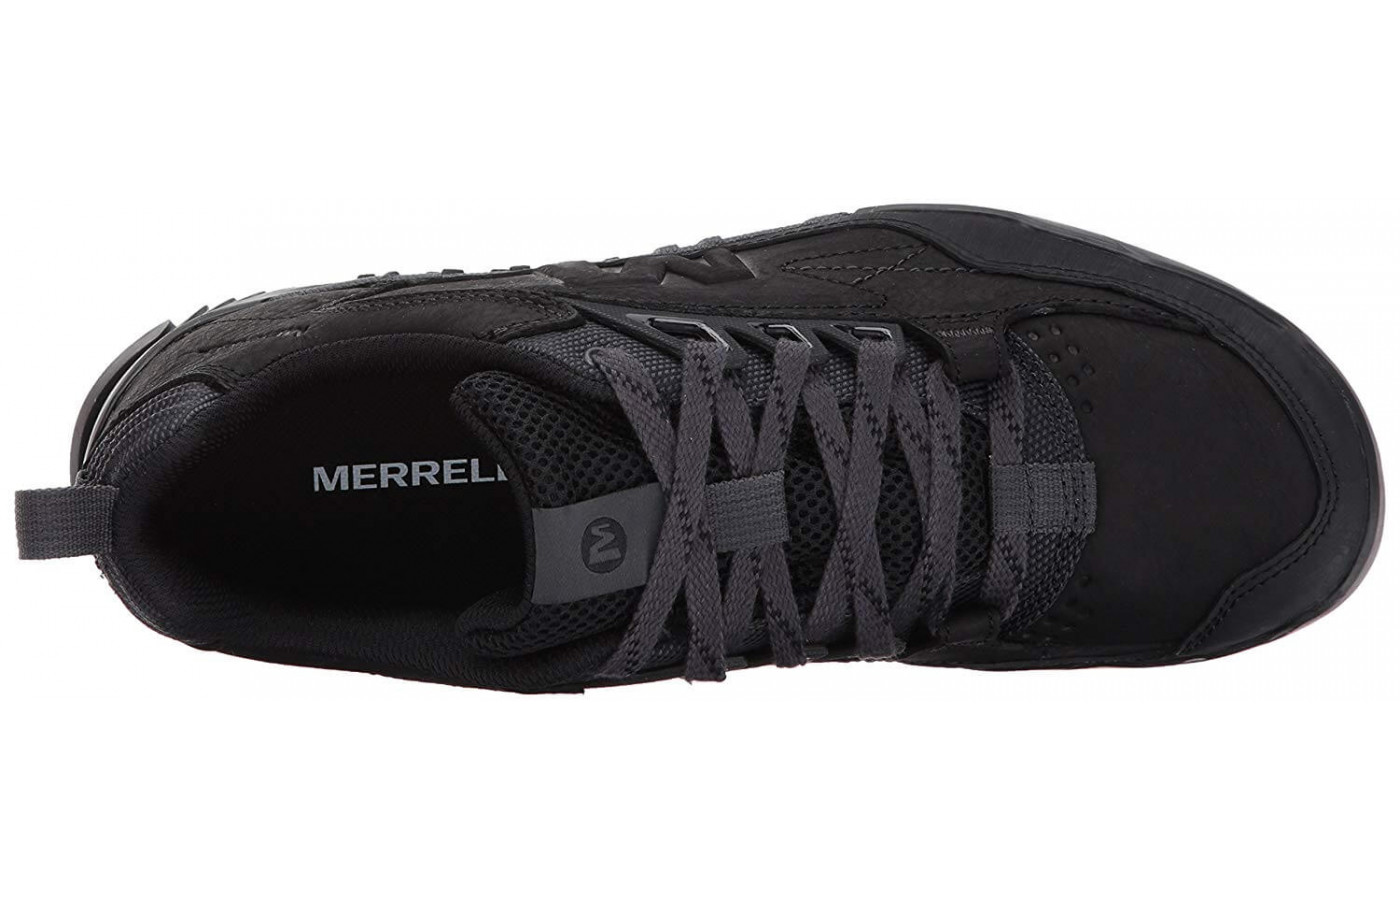 The Merrell Men's Annex Trak Low Shoe is highly durable